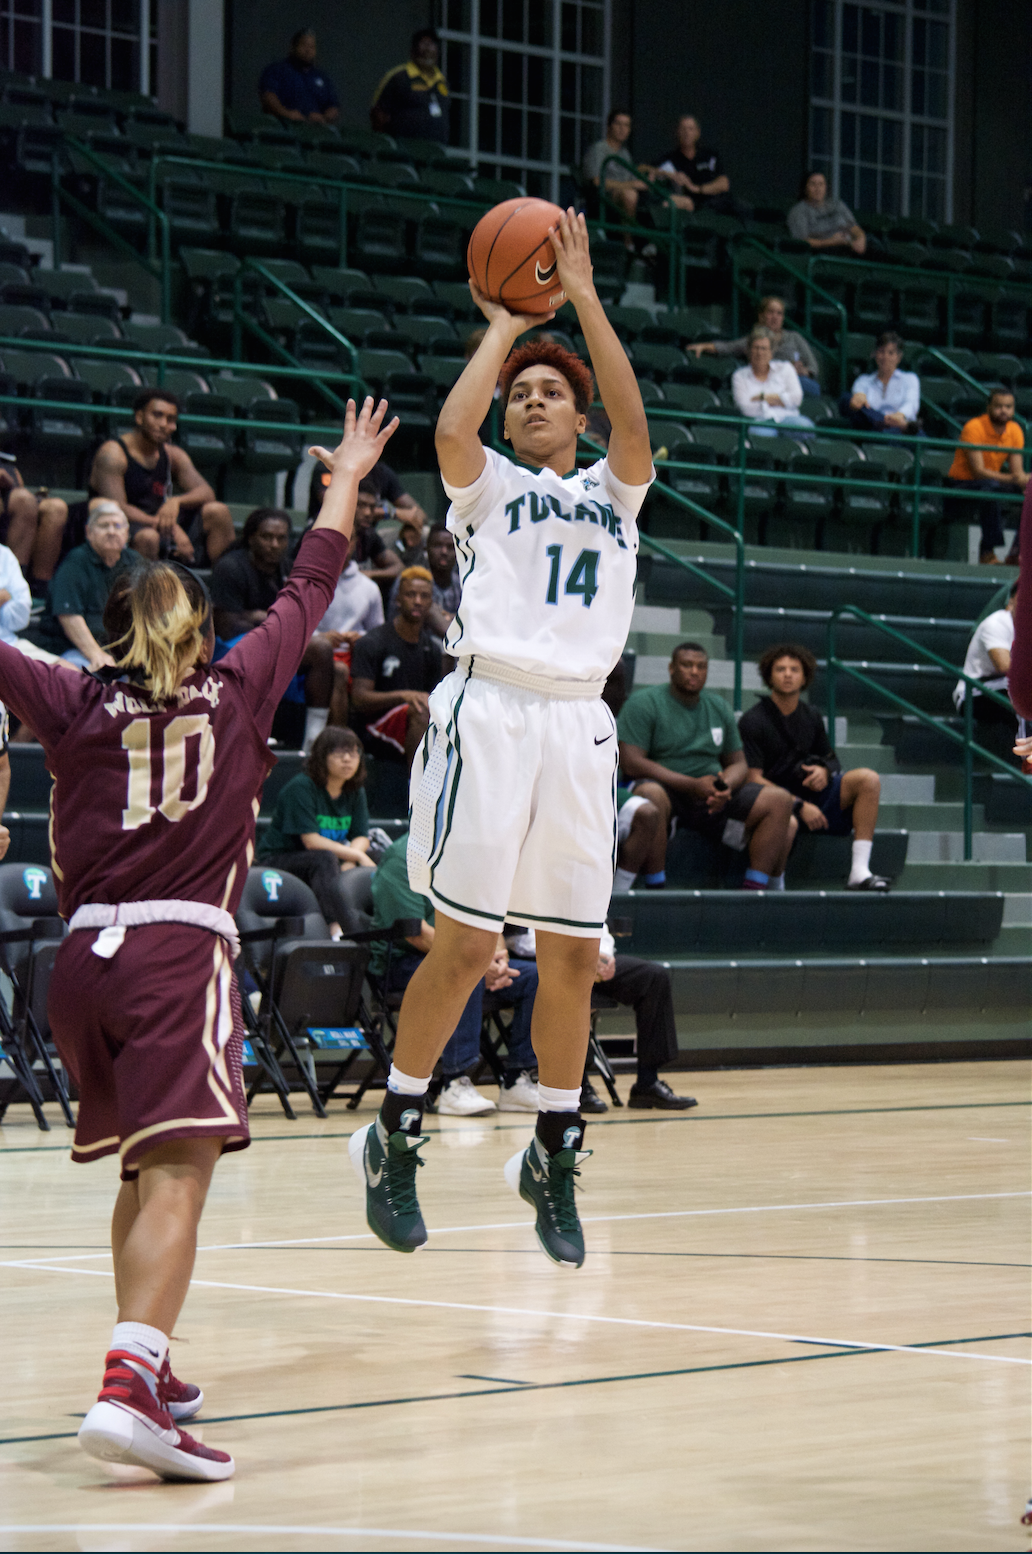 Freshman guard Taylor Emery shoots over sophomore guard Zoie Miller for a two pointer to contribute to Tulane's win in her first Green Wave appearance against Loyola New Orleans on Nov 5 in Devlin Fieldhouse.